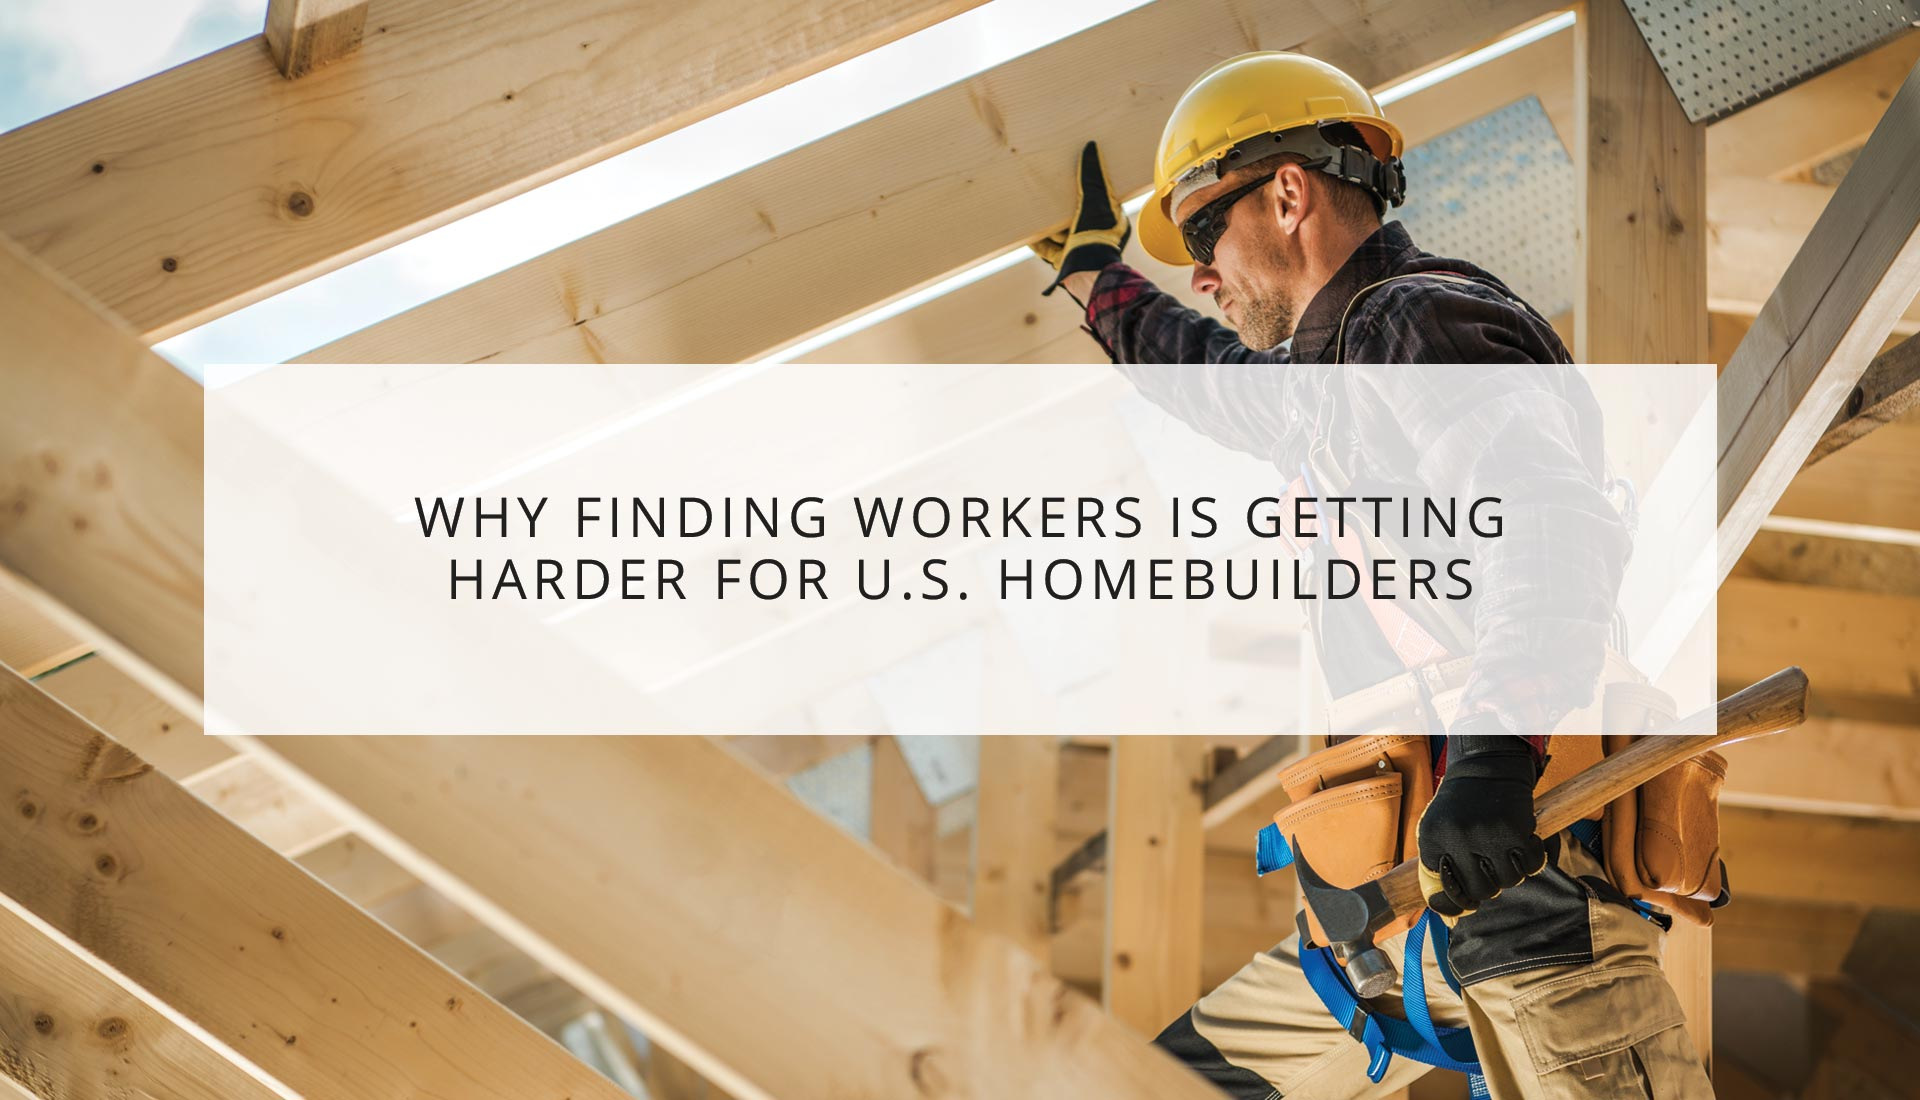 Why Finding Workers is Getting Harder for U.S. Homebuilders